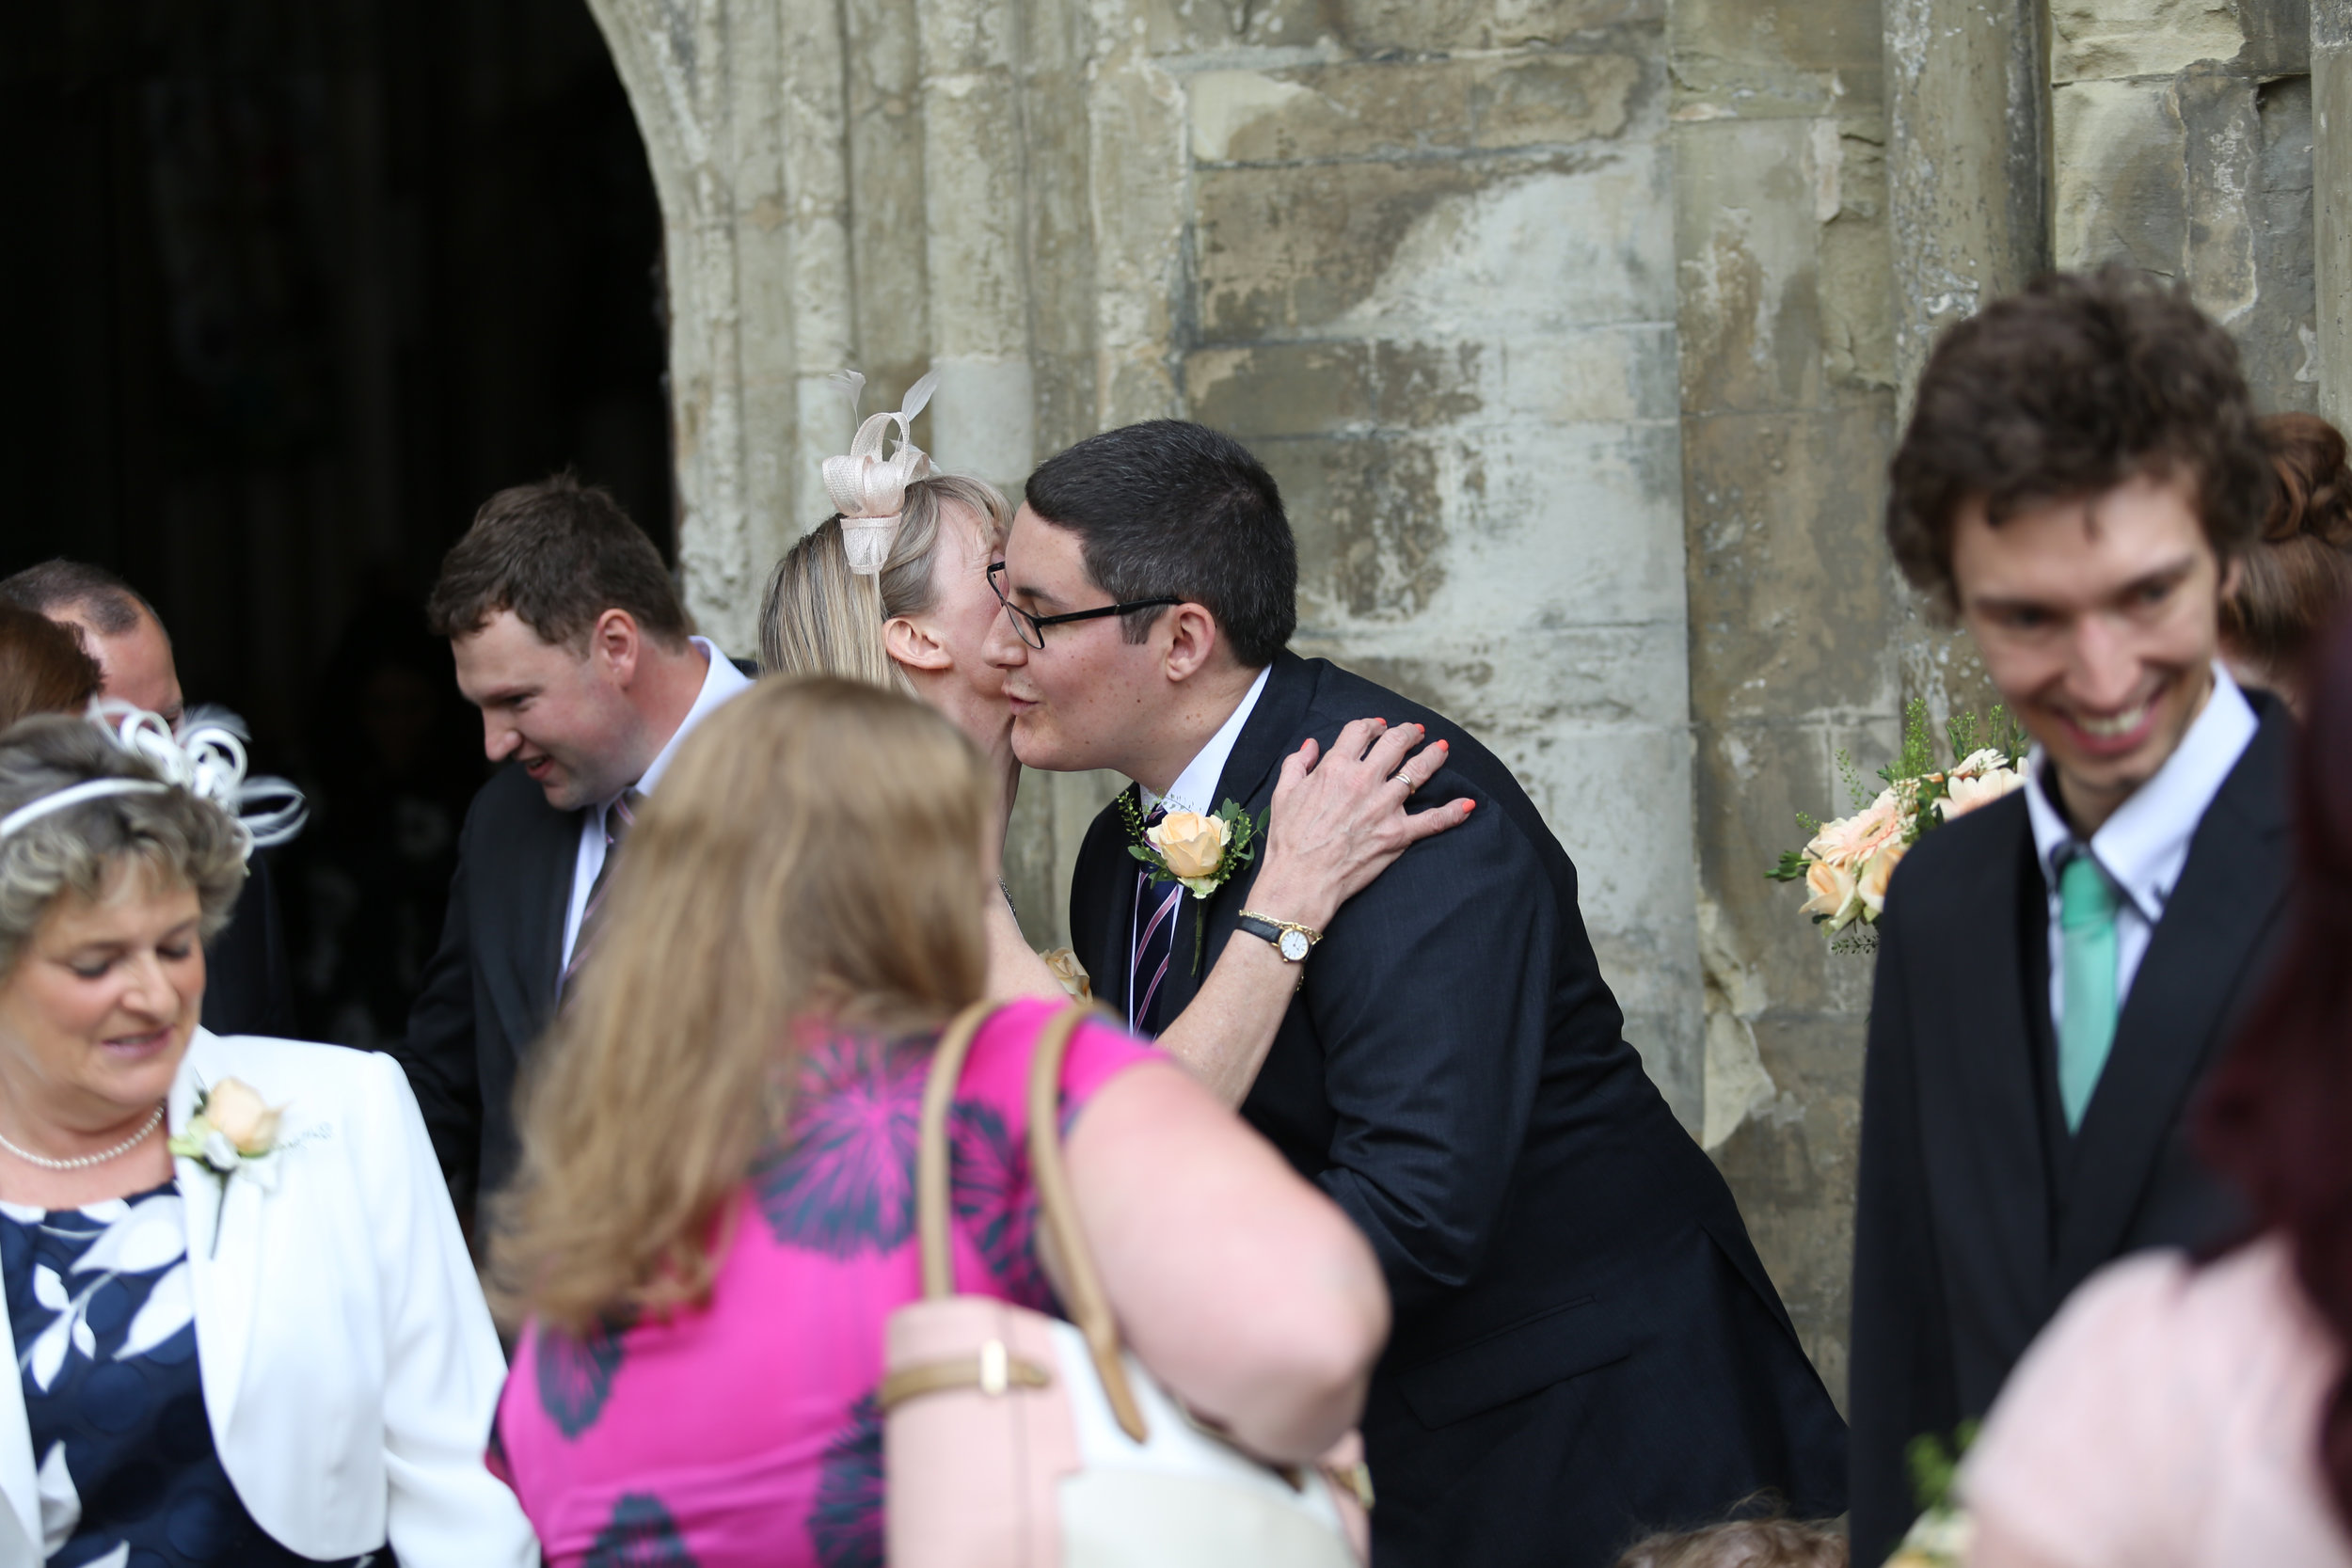 JELLYFISH WEDDING PHOTOGRAPHY THE PRIORY ST PETER CHURCH DUNSTABLE (24).jpg